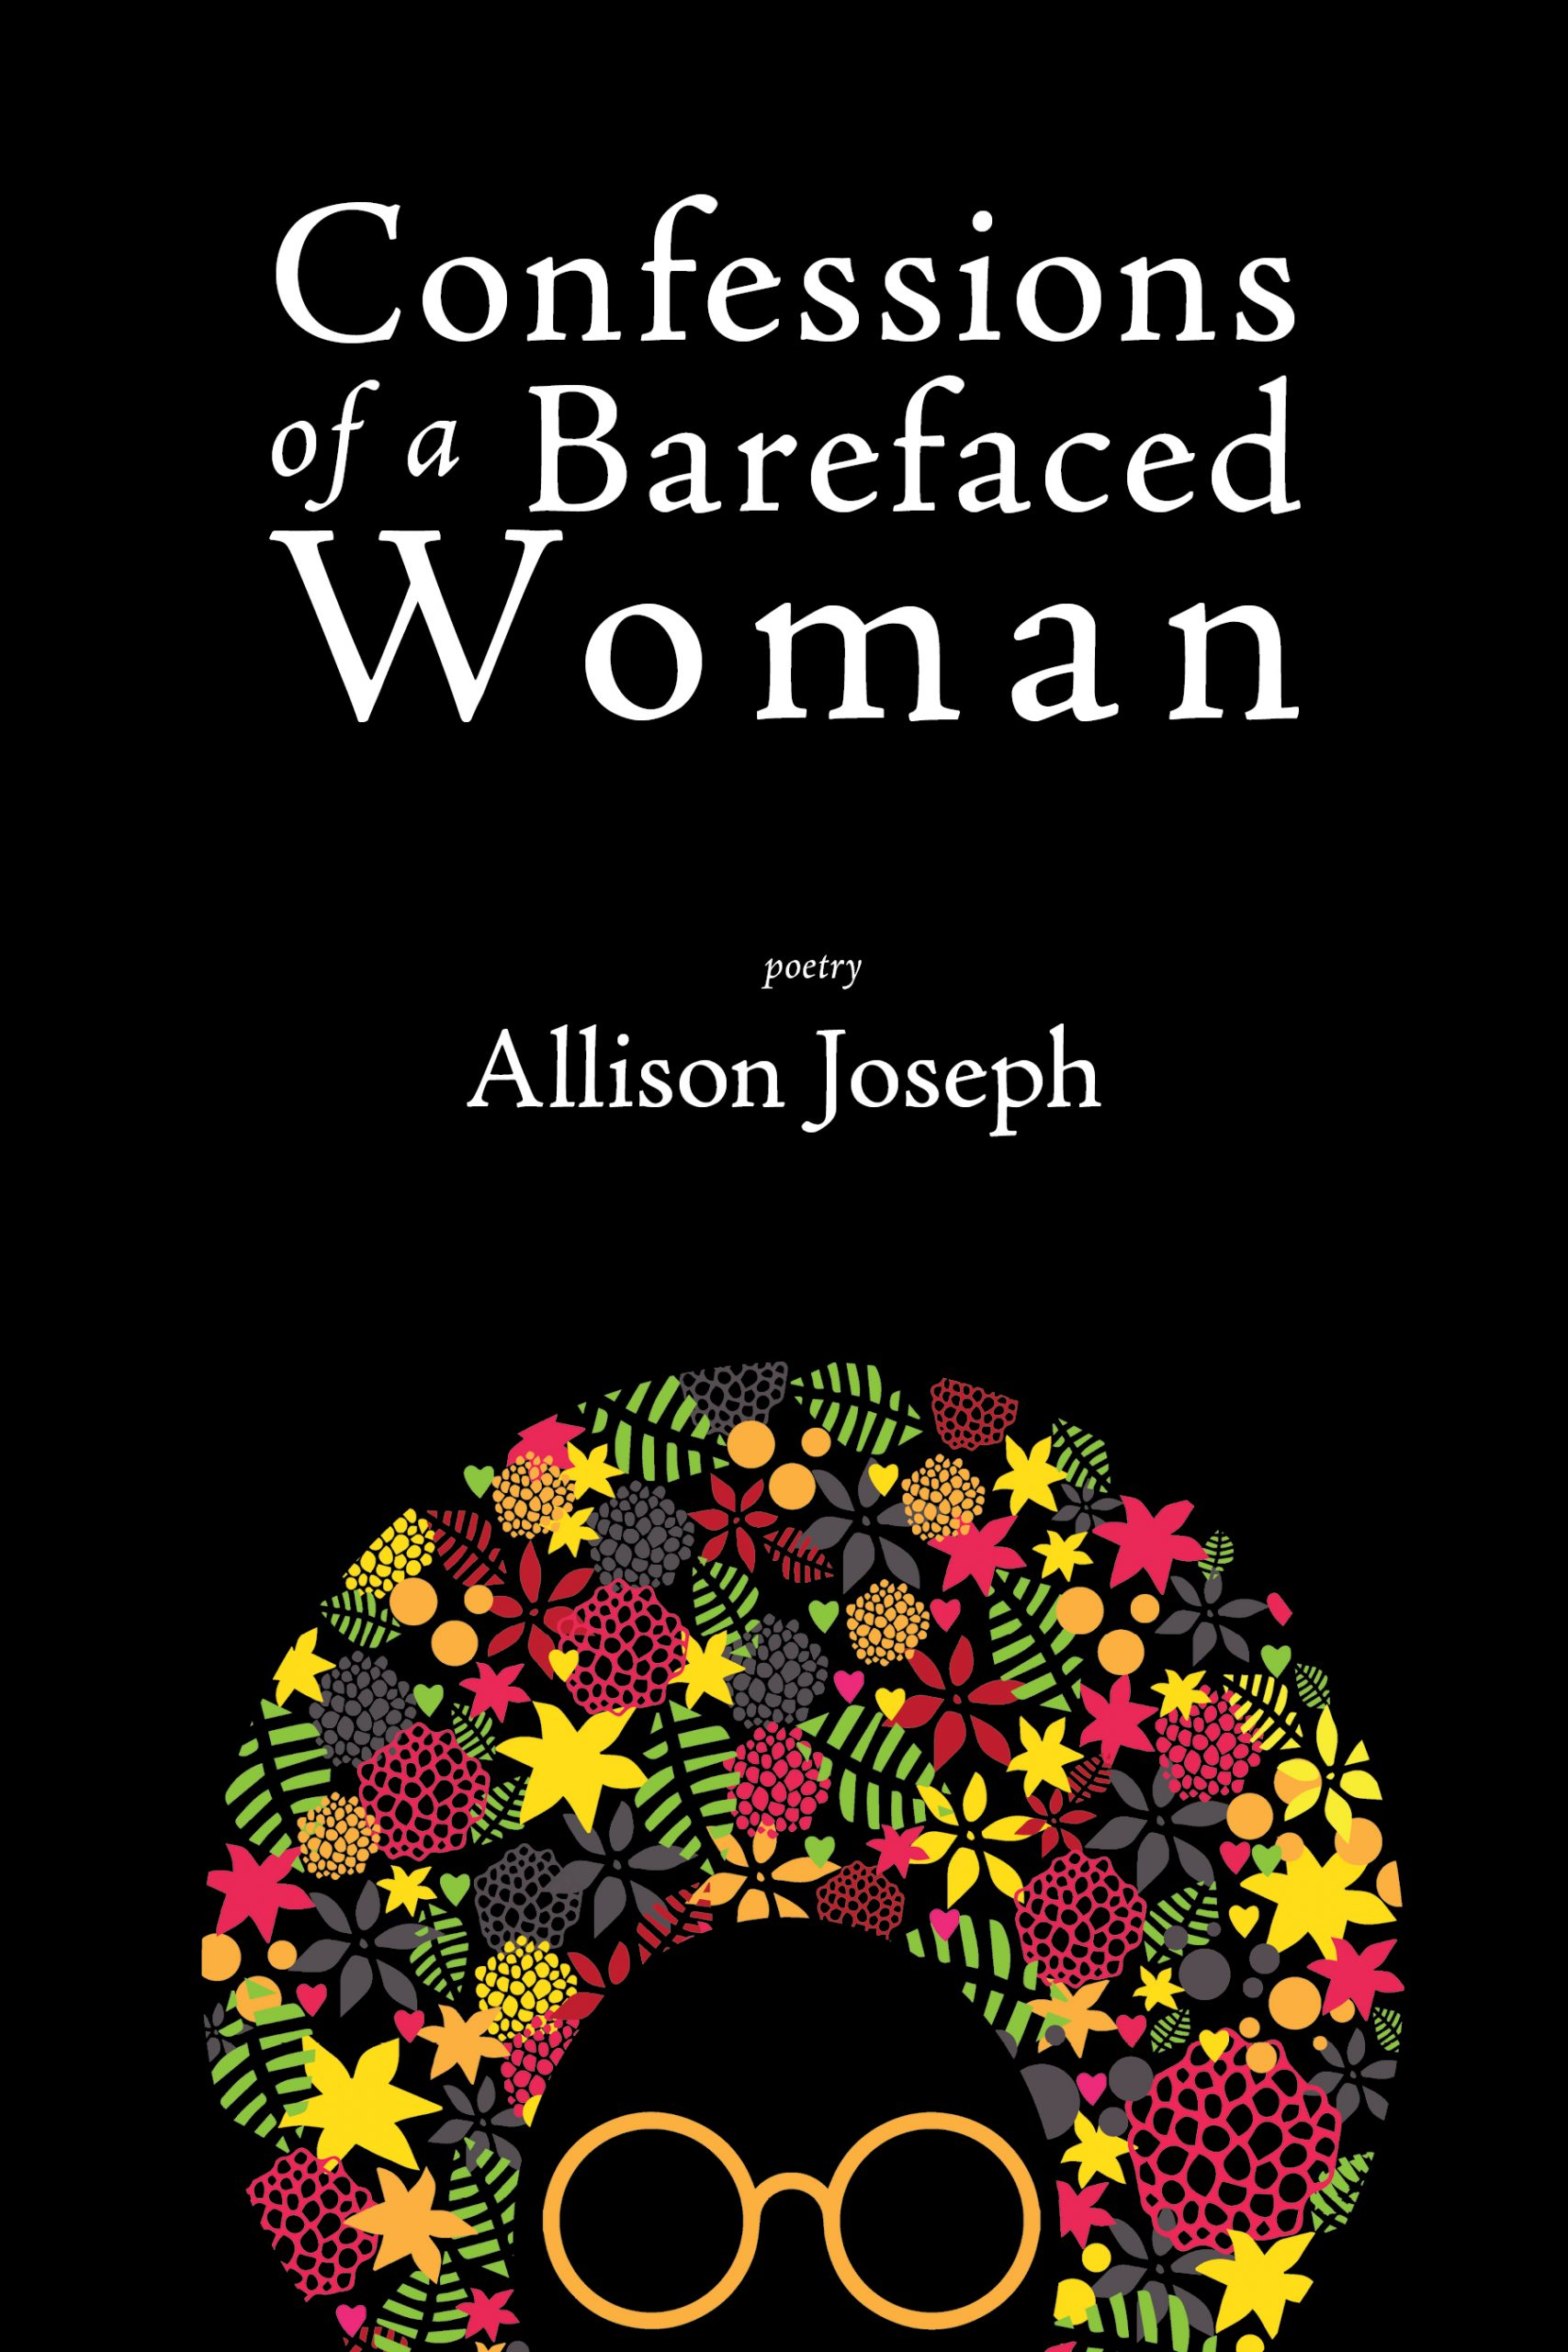 A black background and a colorful graphic design of a woman with an afro and glasses, with script that reads Confessions of a Barefaced Woman poetry by Allison Joseph.